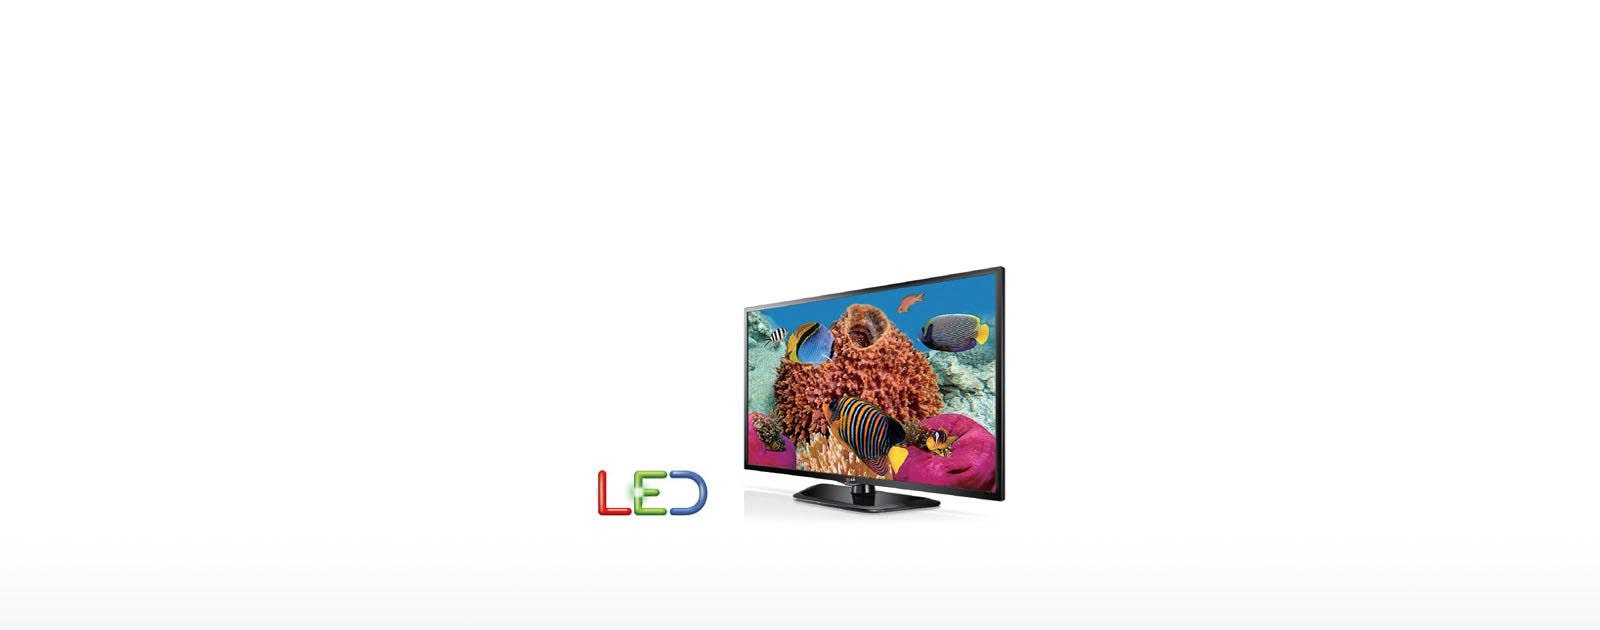 LG 42LN5300 TV DRIVERS FOR WINDOWS DOWNLOAD